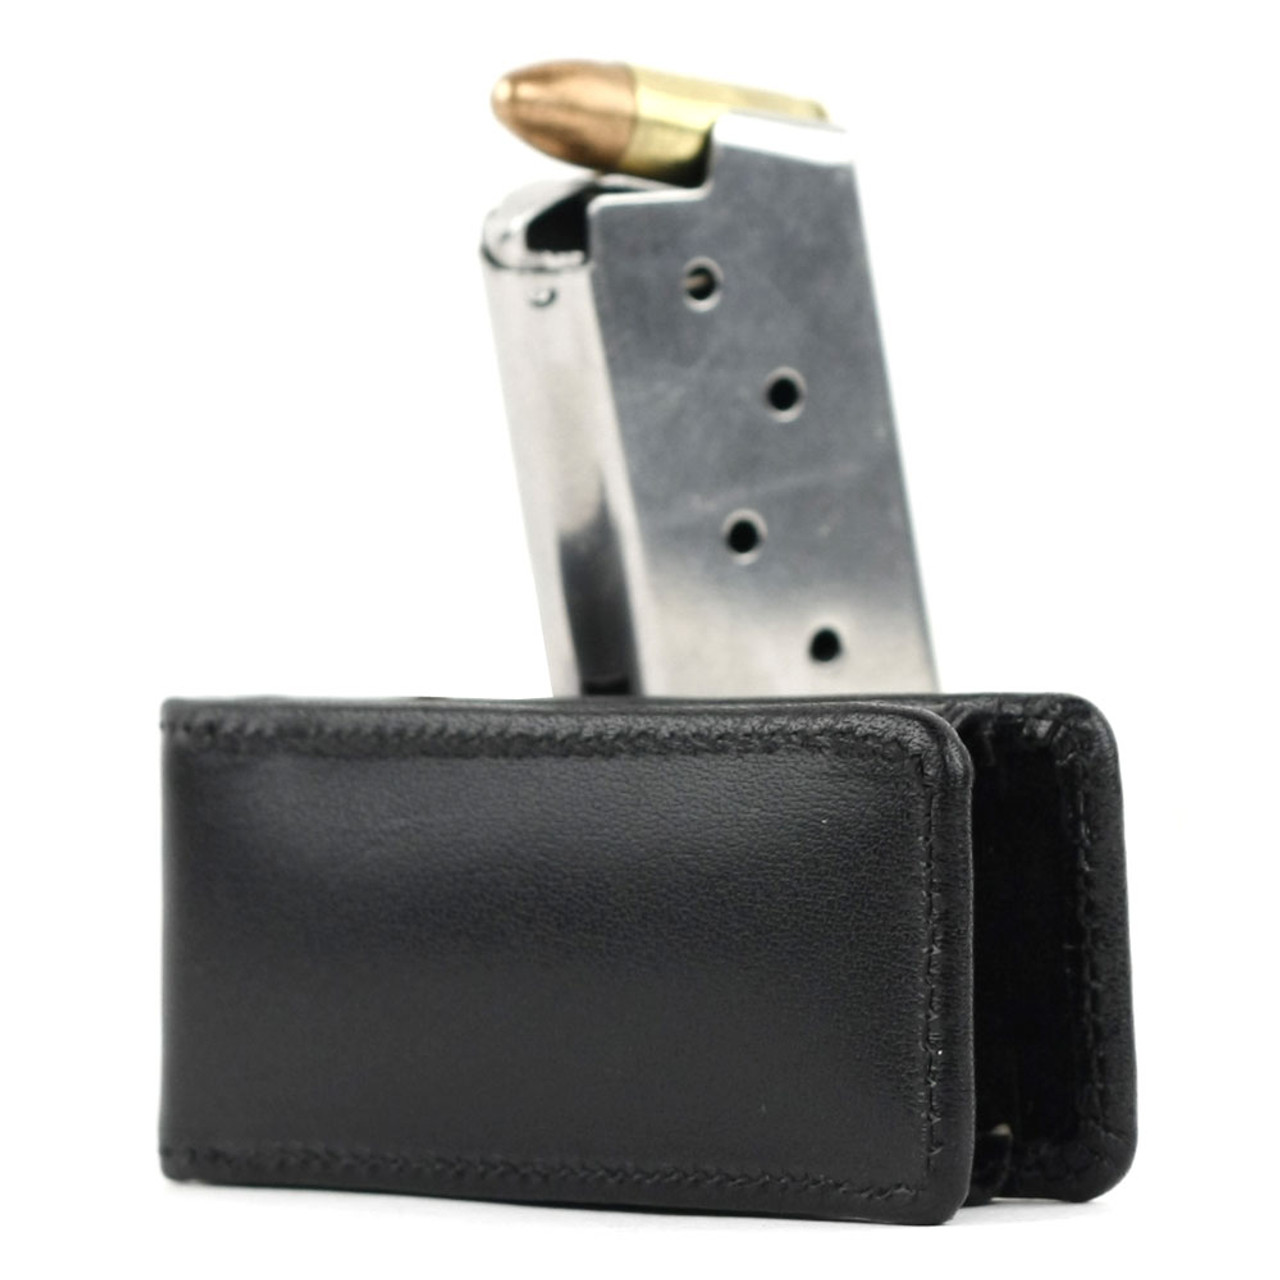 Kimber Micro CDP 9mm Magazine Pocket Protector